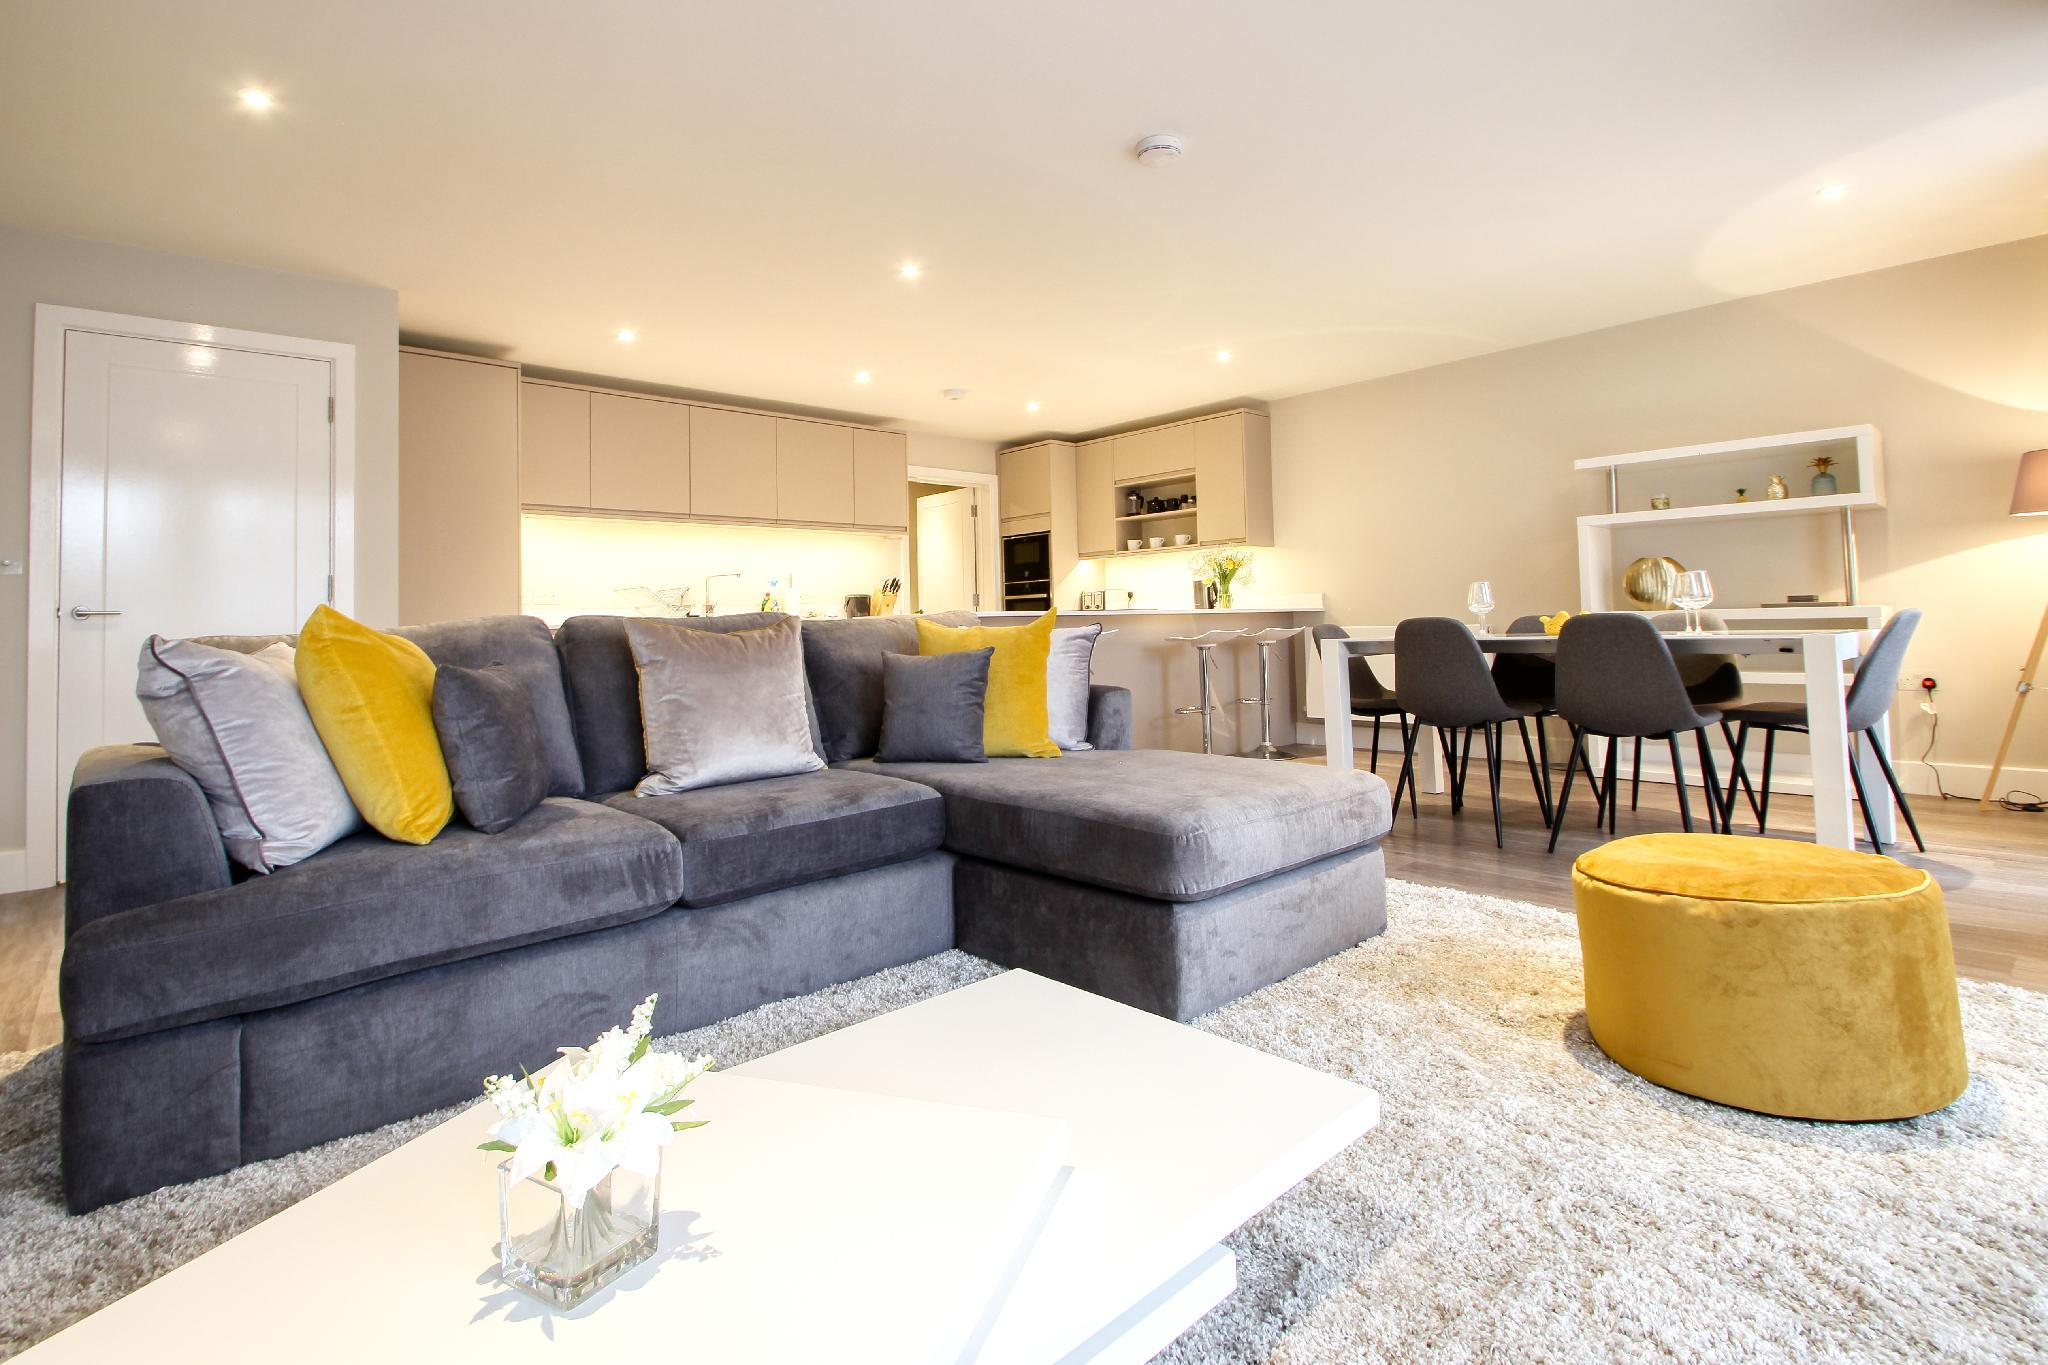 Righton Serviced Apartment In Summertown  oxcgph2